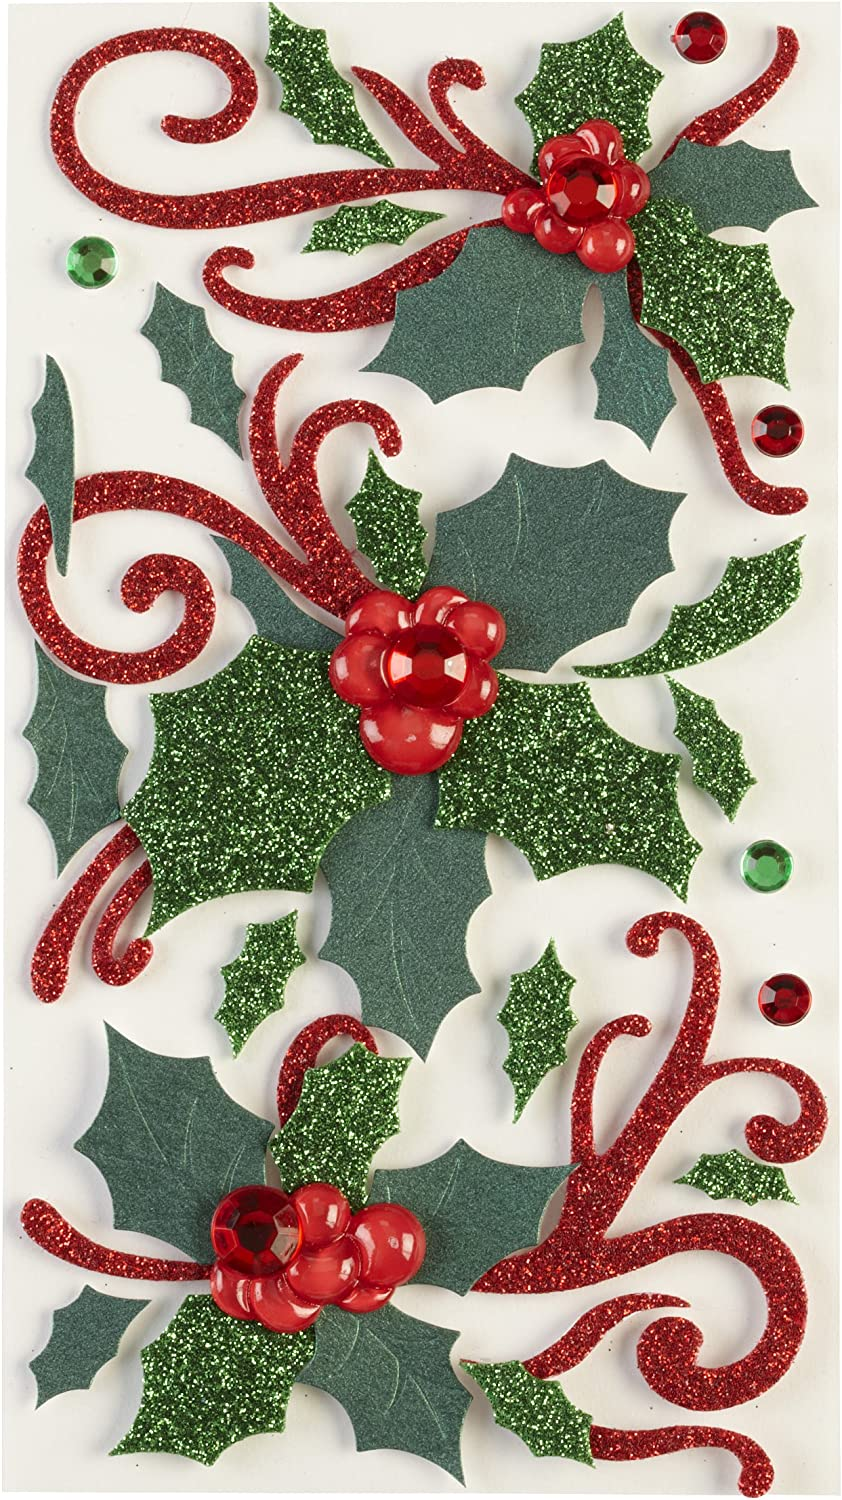 CHIPBOARD Snowflakes BQ13 50-21580 Wilton 0015586974423 jolees Other Jolly Boutique